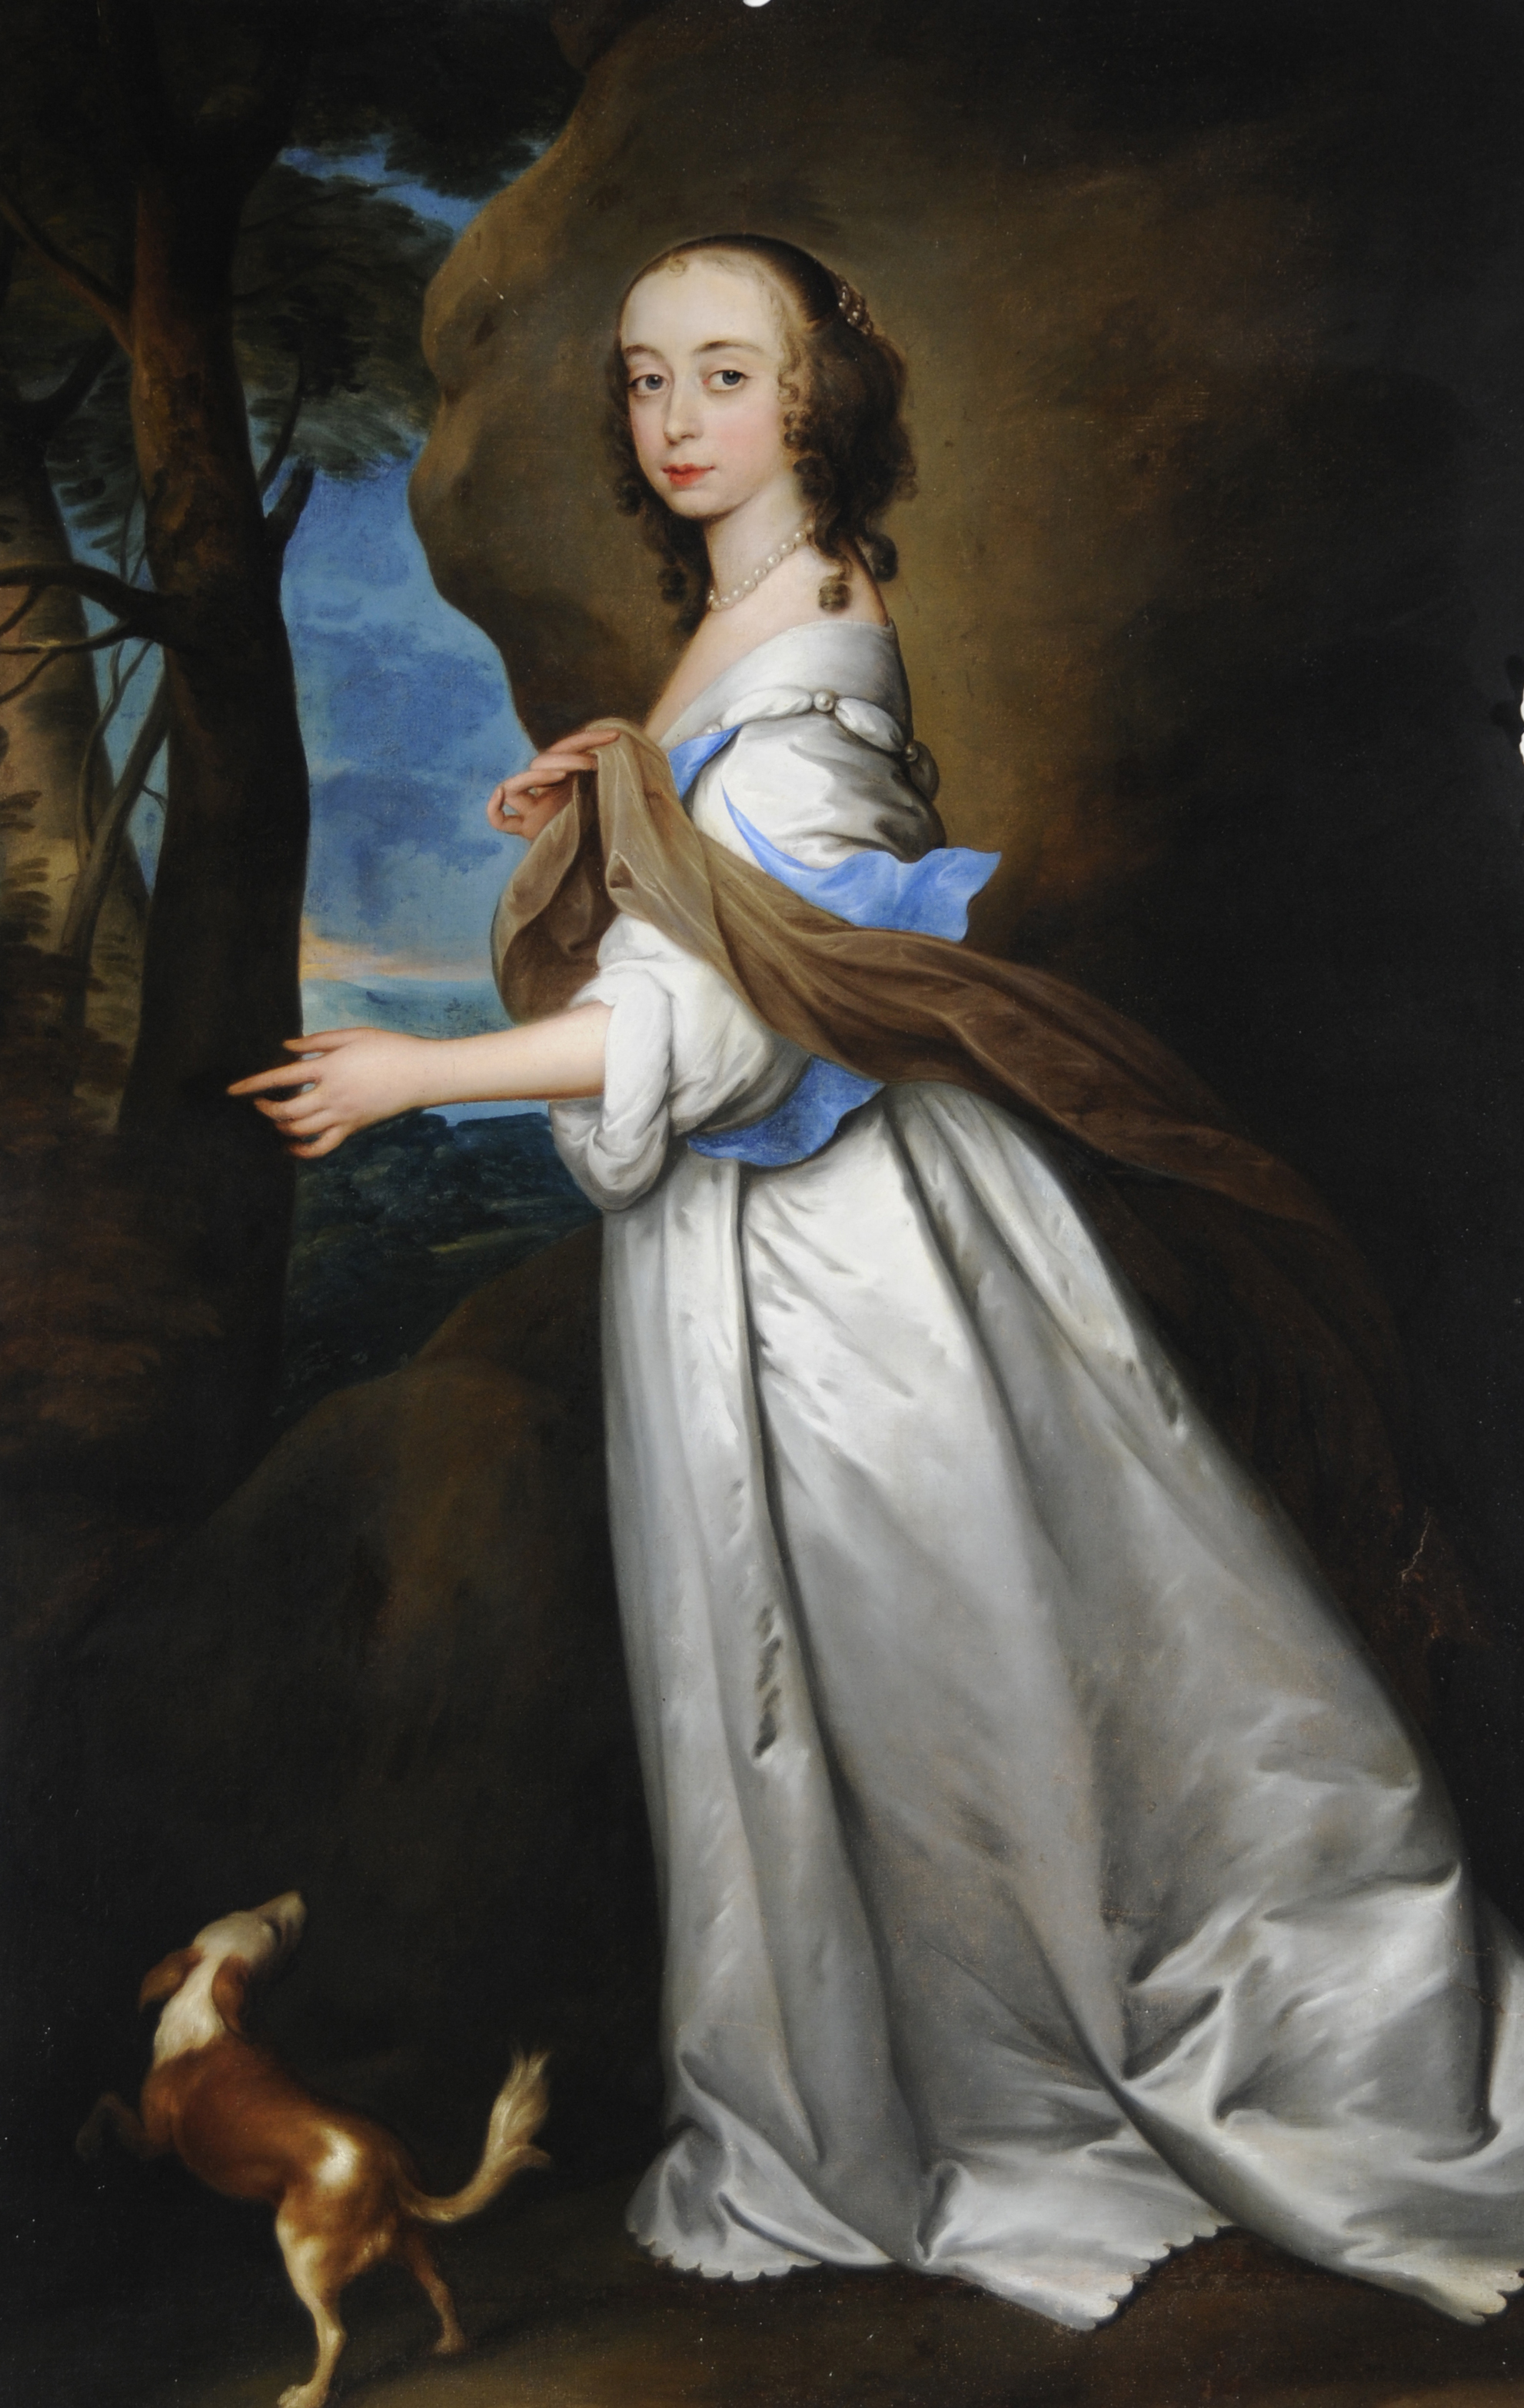 Portrait painting of Mary Ingram.  She has been painted on a walk outside, is wearing a white dress and has a small dog at her feet.